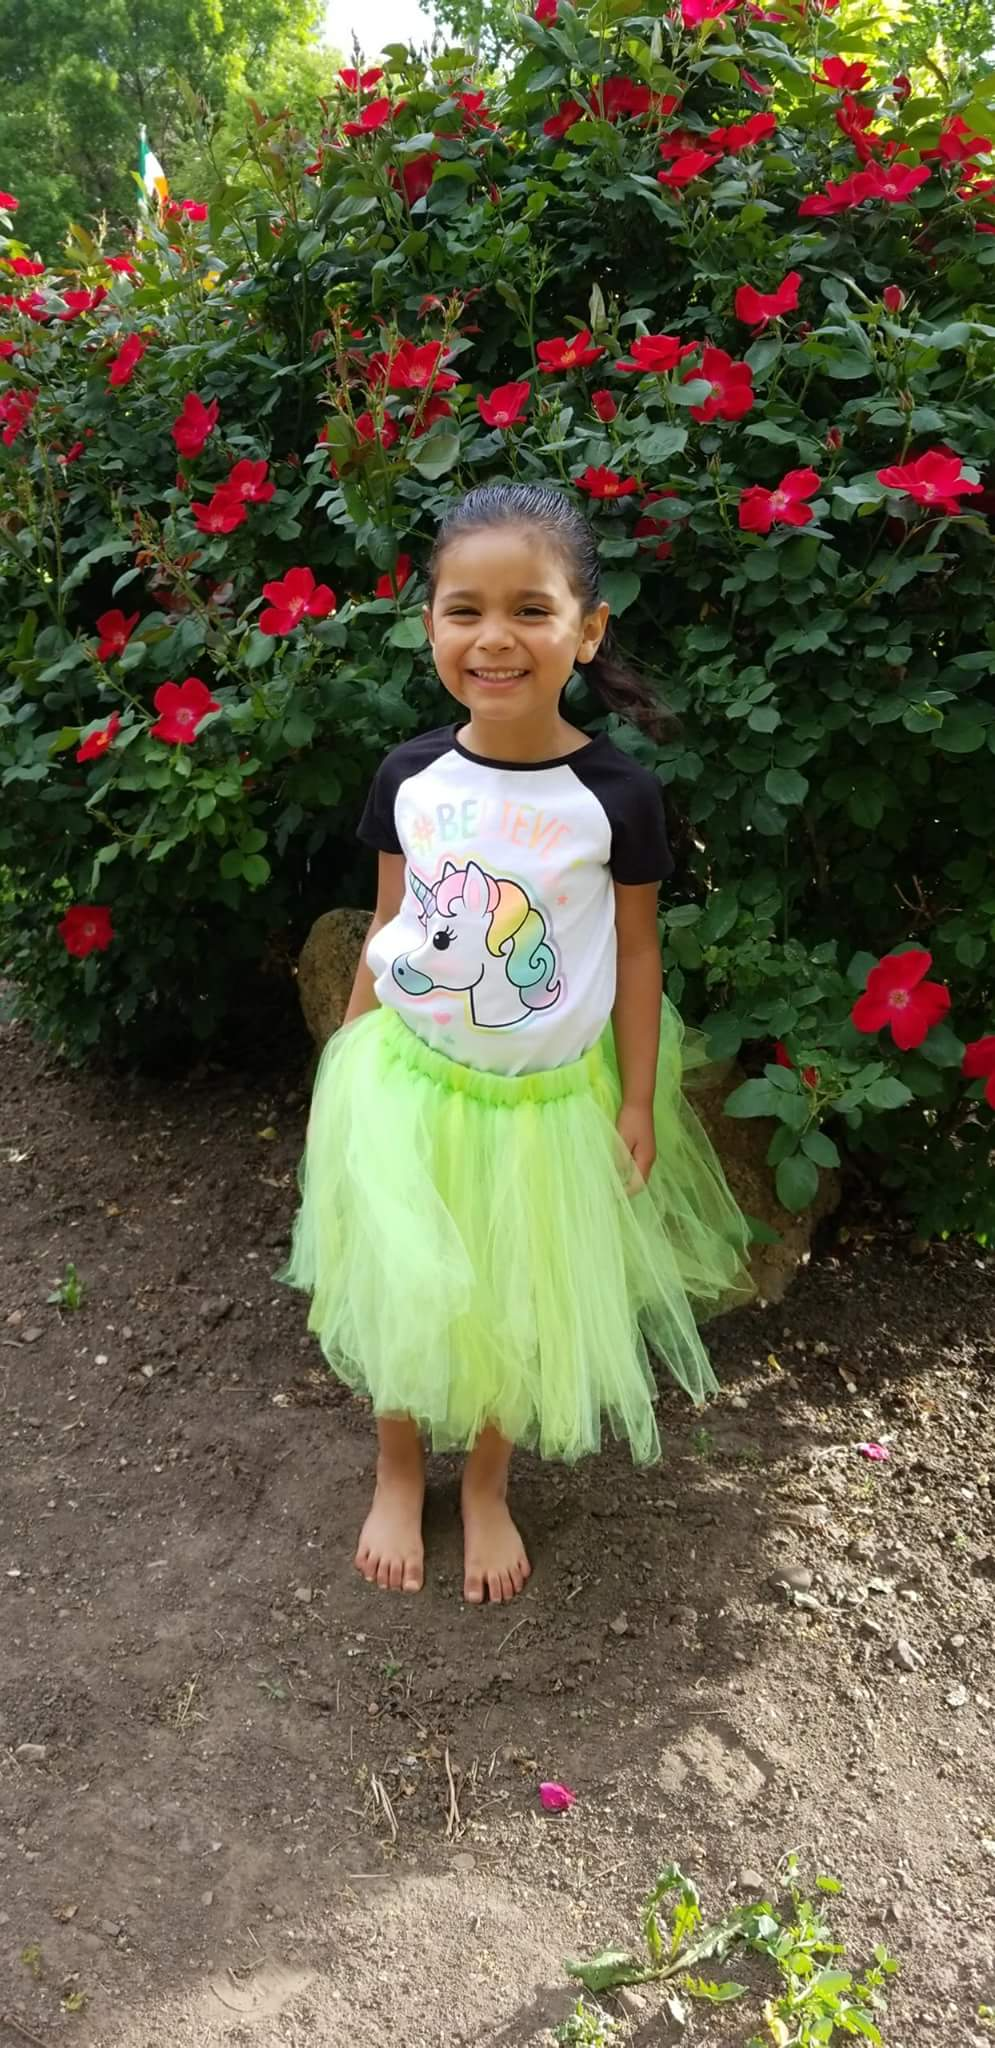 c94187a10071 Babies infants Toddler Tots Girls Lime Green Tutu birthday photo ...